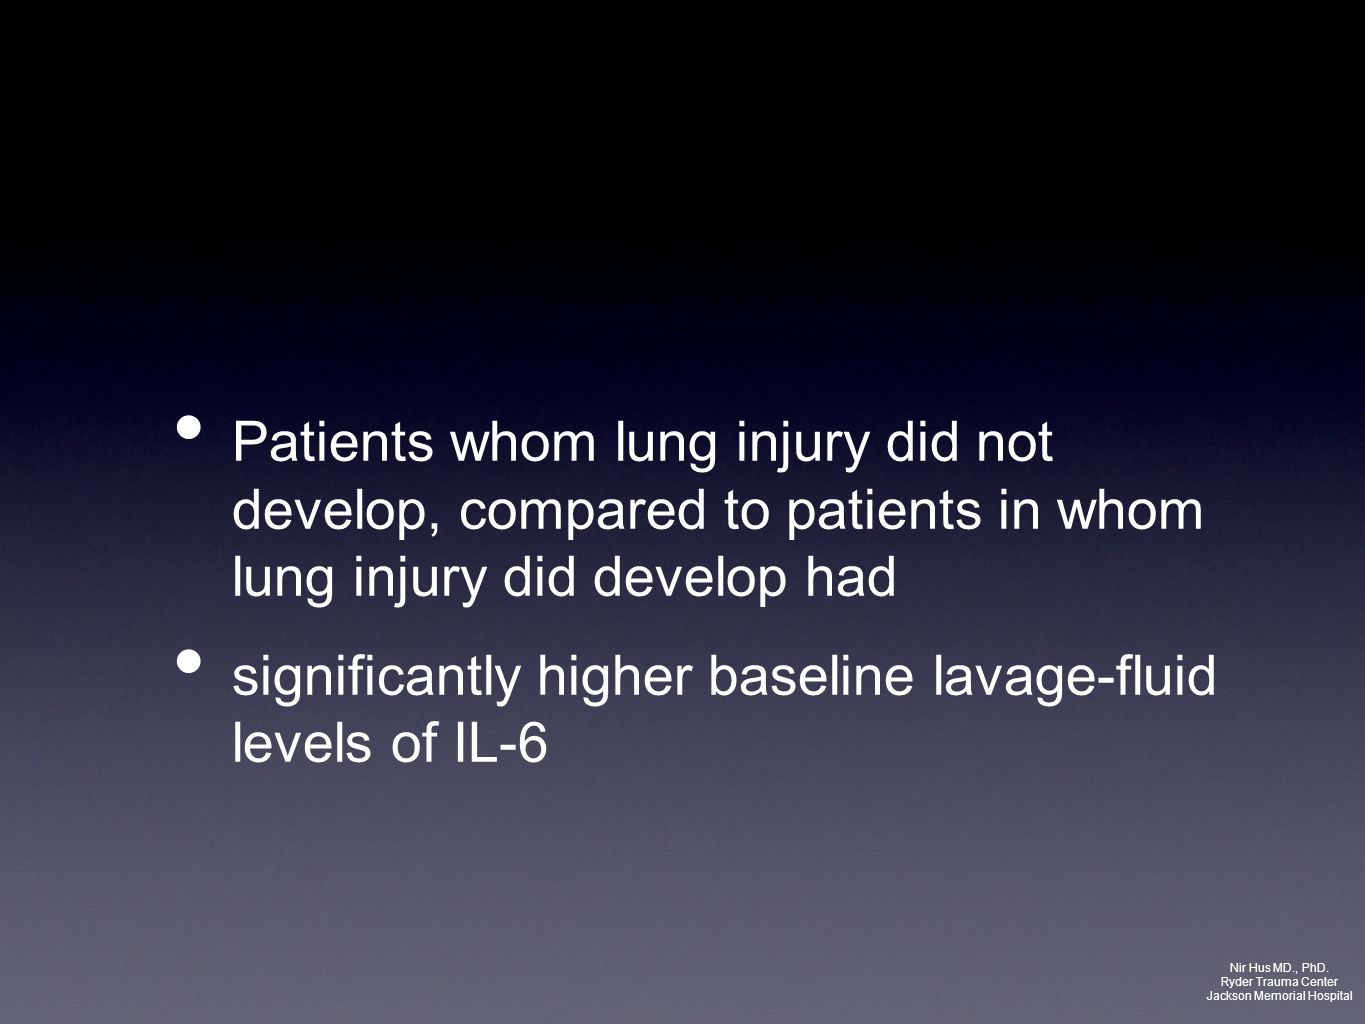 Patients whom lung injury did not develop, compared to patients in whom lung injury did develop had significantly higher baseline lavage-fluid levels